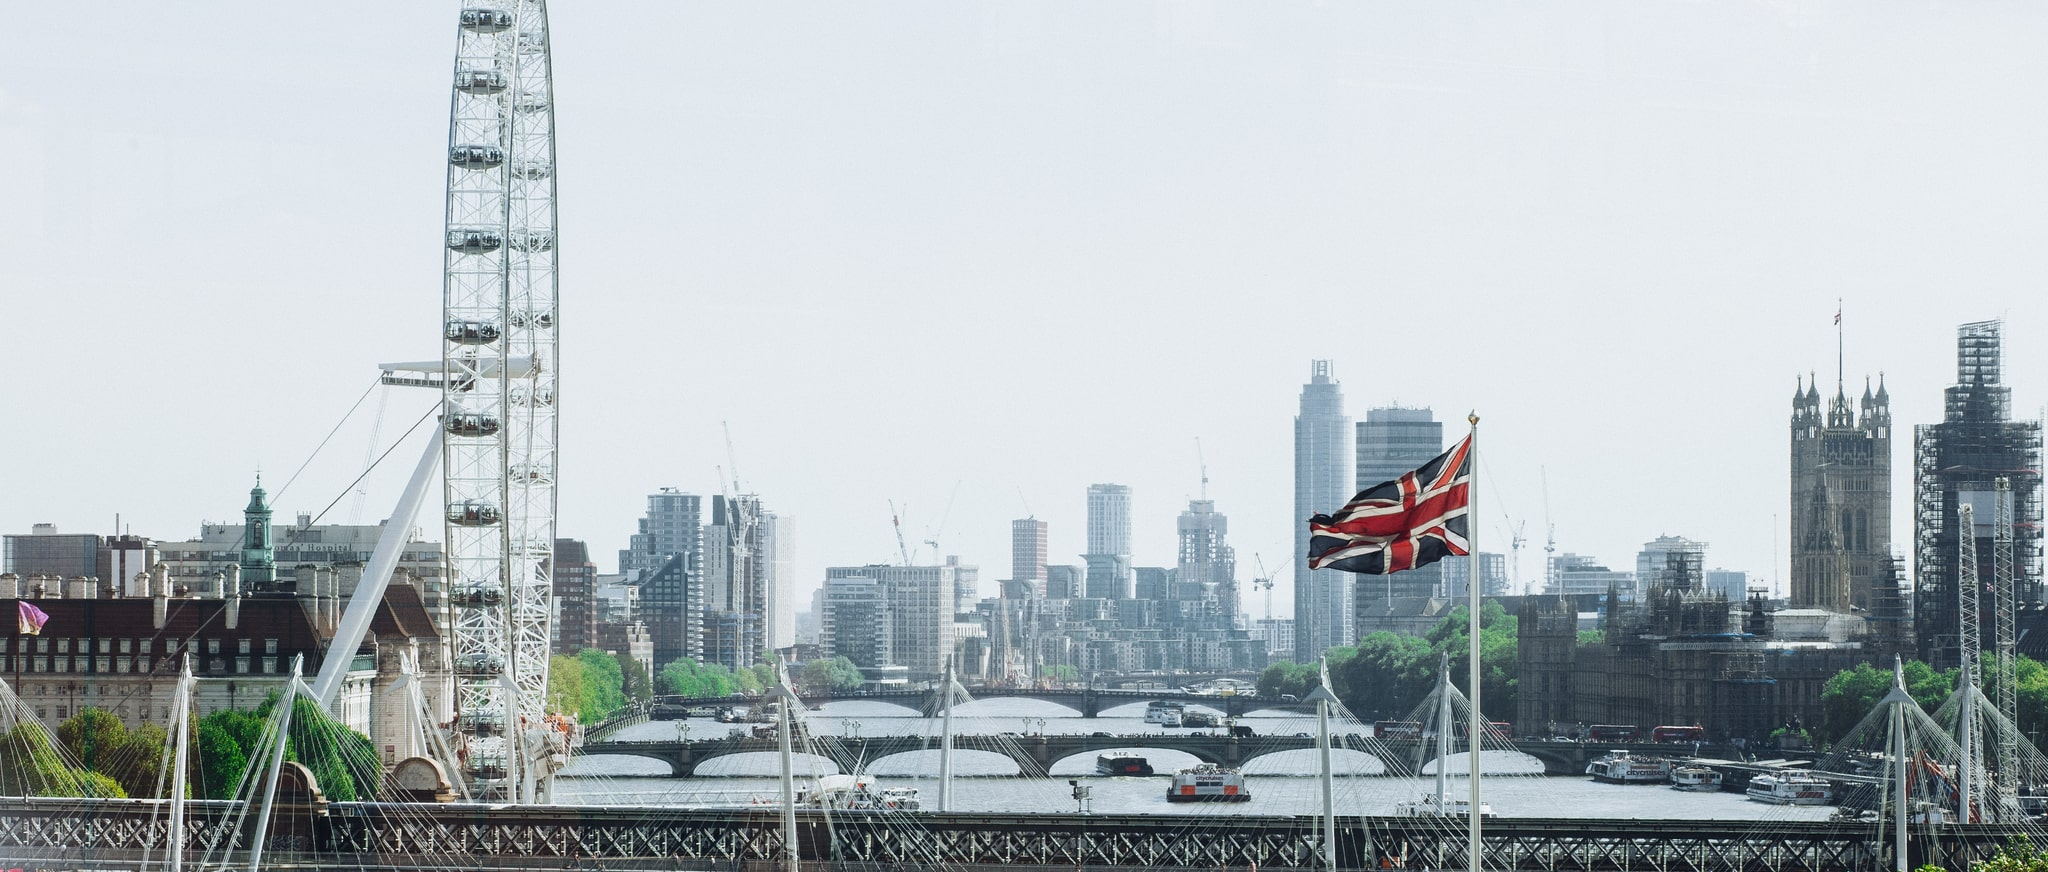 London City - Thema Brexit, by dylan nolte unsplash